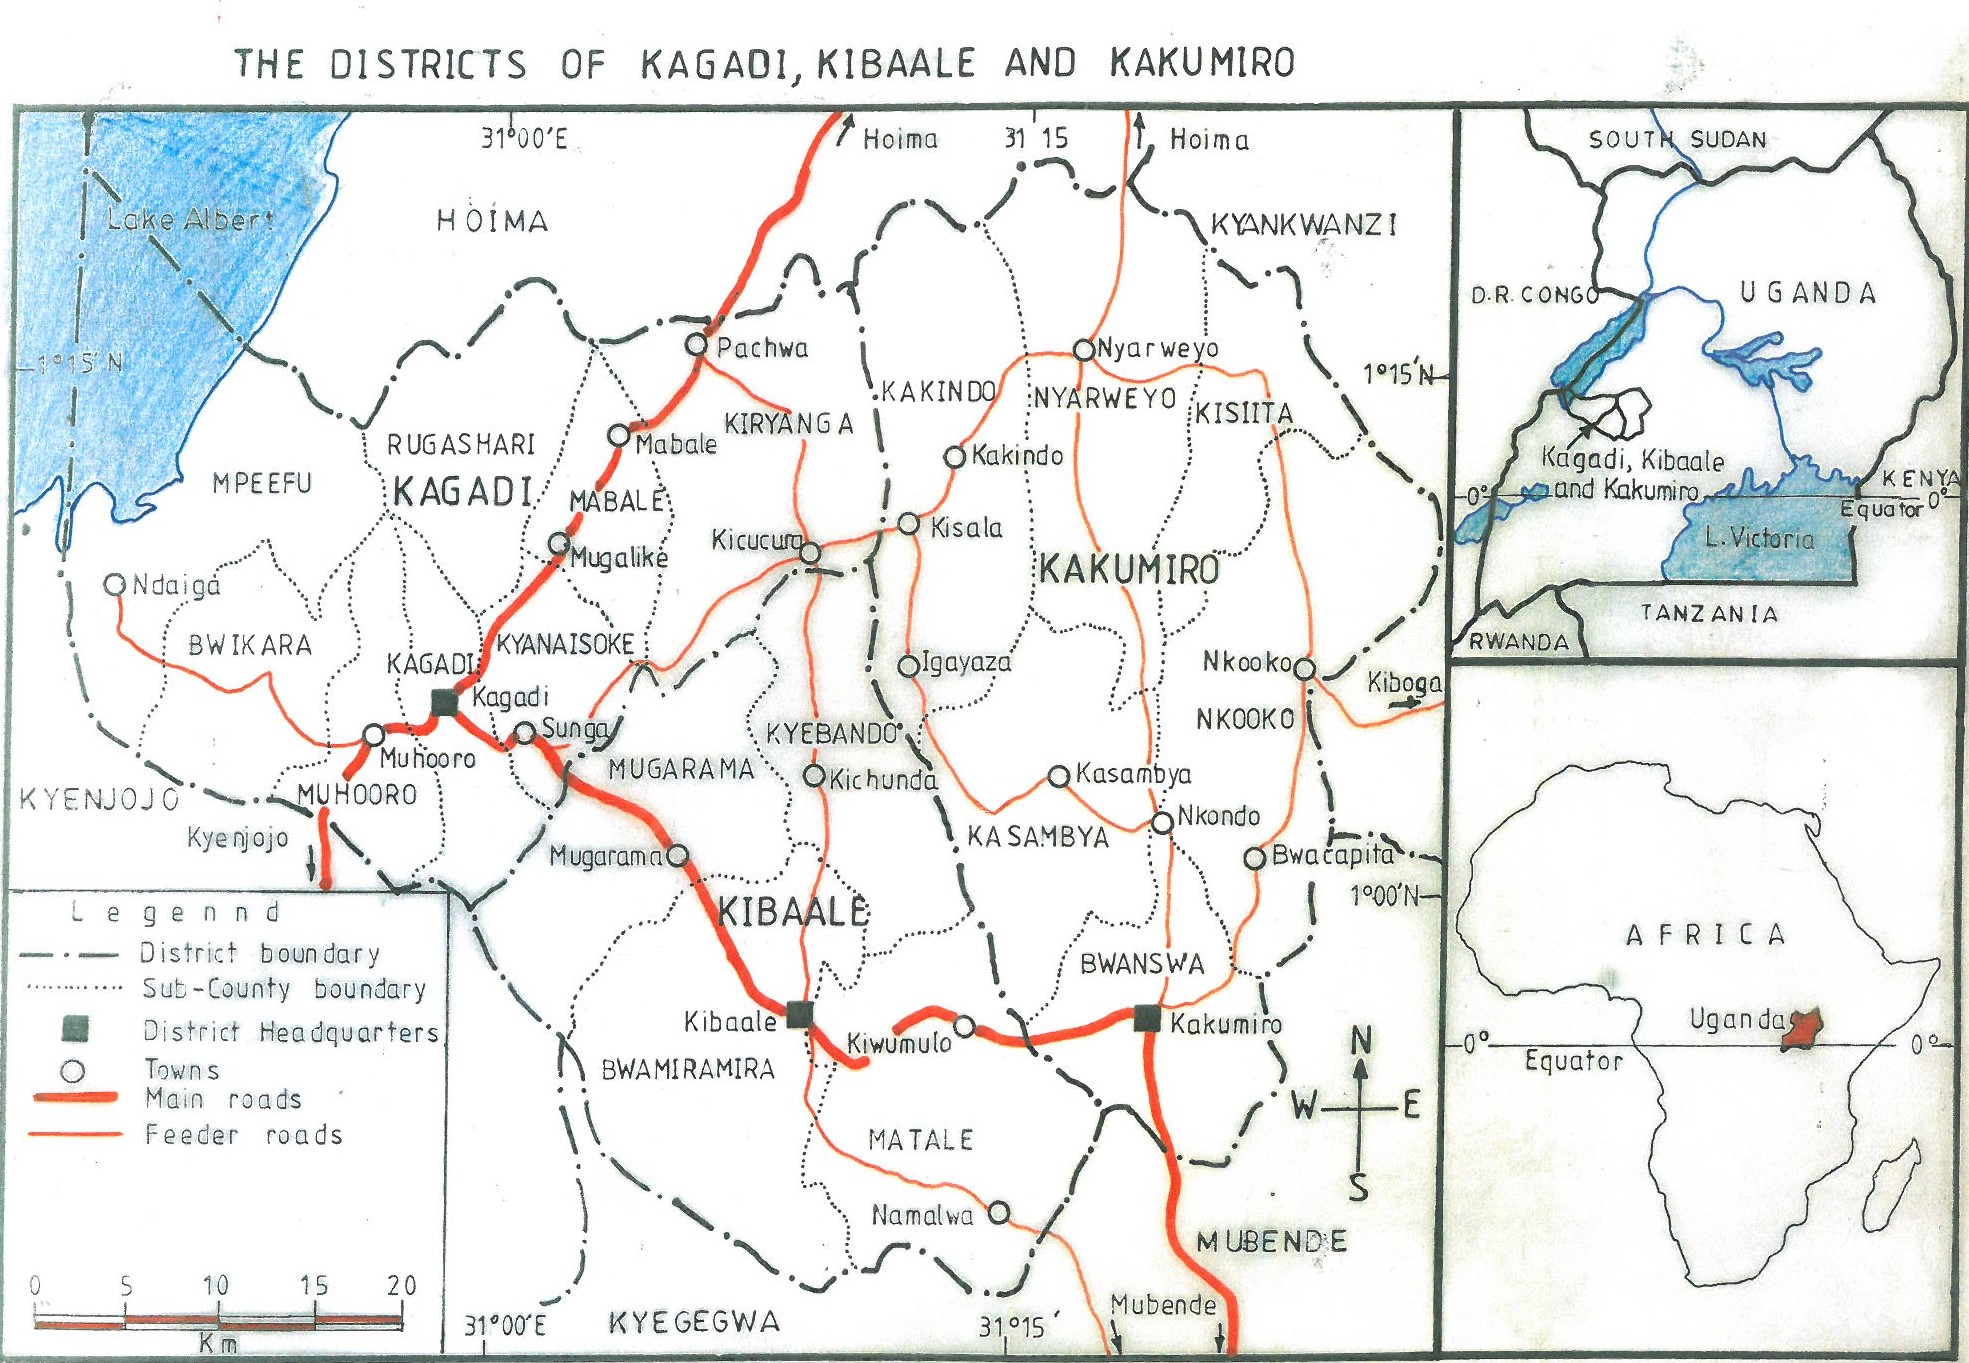 The ARU Academic Research Team develops the map of Kagadi, Kibaale and Kakumiro Districts